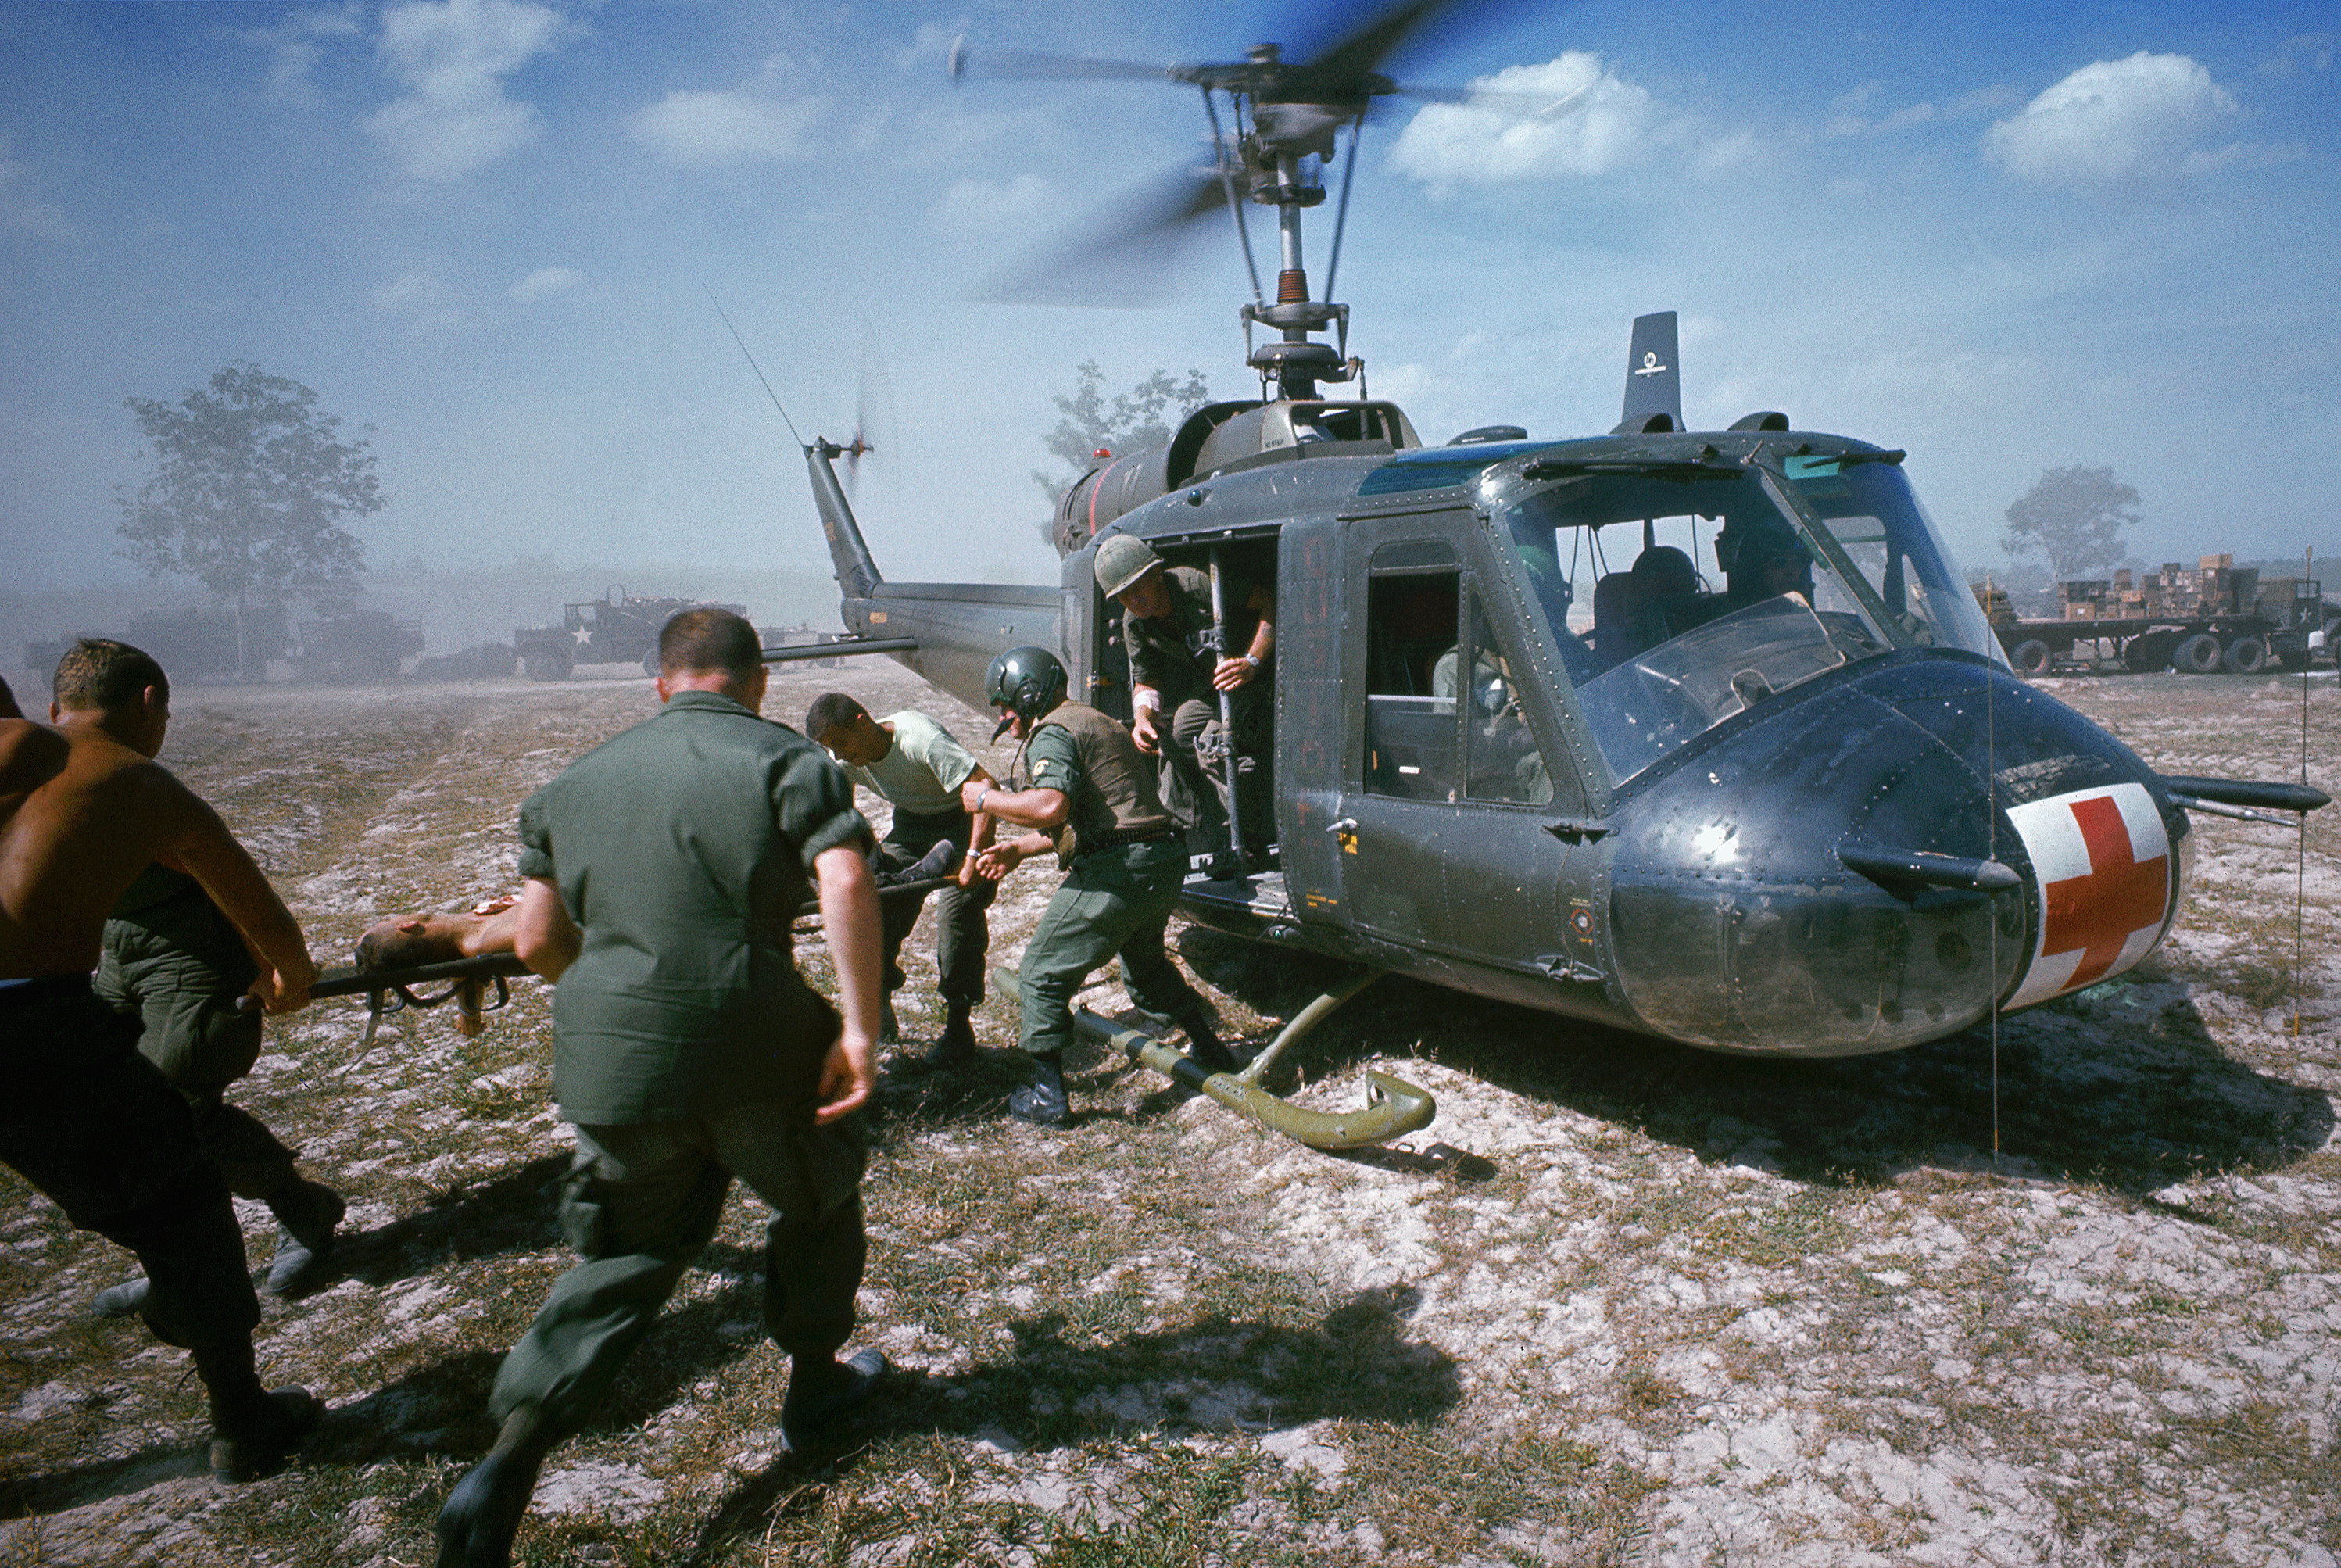 famous helicopter pilots with Helicopter Rescues Casualties Vietnam 1968 on Great Military Retirement Quotes also Met Look Alike Olds likewise Content 35483458 8 likewise Harrison Ford Recuperating Pelvic Fracture Plane Crash also 03.